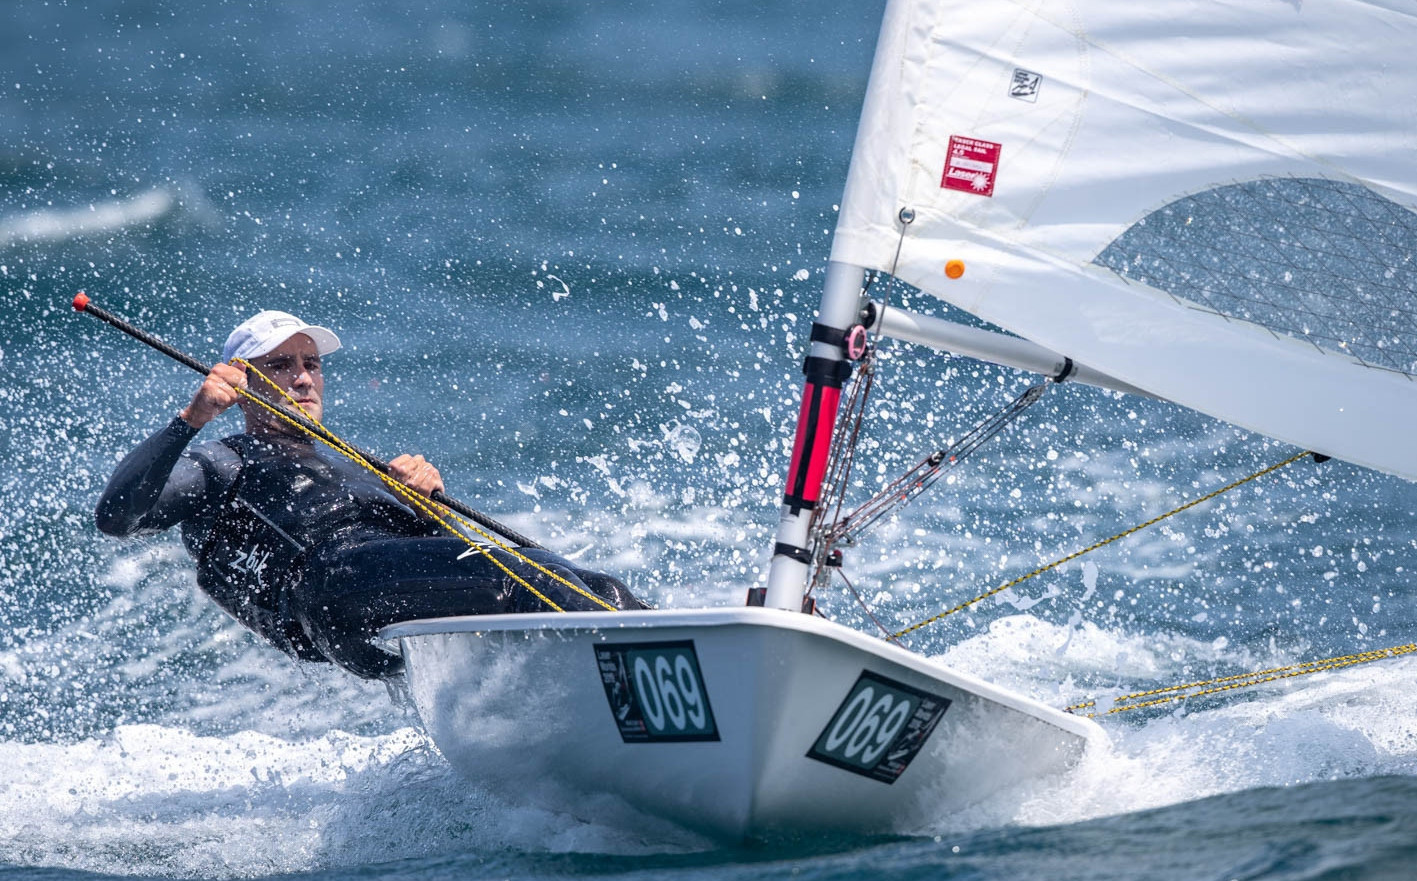 Two wins out of two on the final day of qualification racing at the Laser Men's World Championship in Japan left New Zealand's Sam Meech top of the listings ahead of the medal matches ©Junichi Hirai / Bulkhead Magazine Japan